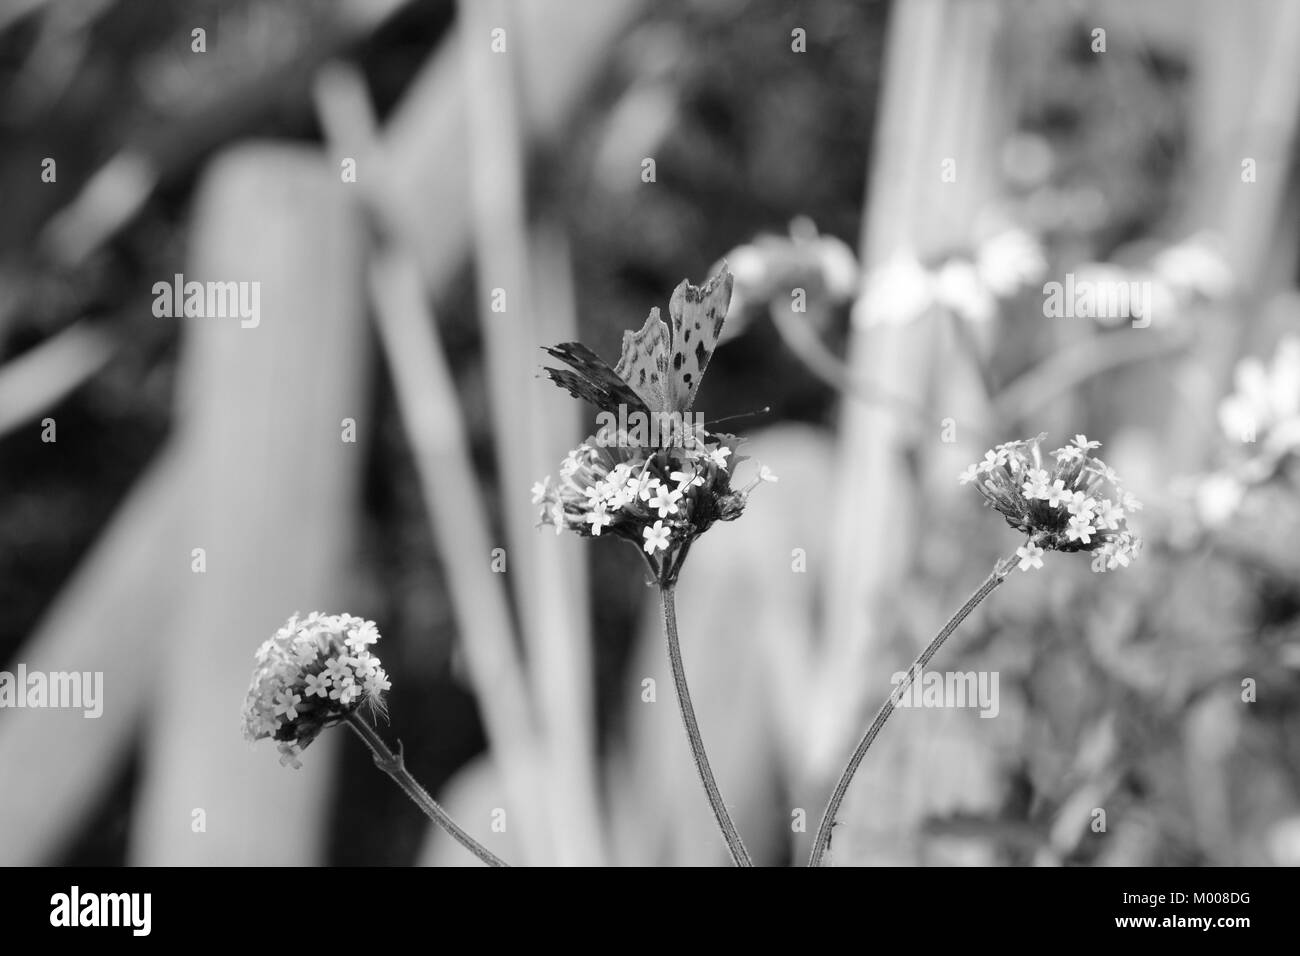 Head-on view of comma butterfly drinking nectar from verbena flowers, blurred background of daisies and wood beyond - Stock Image